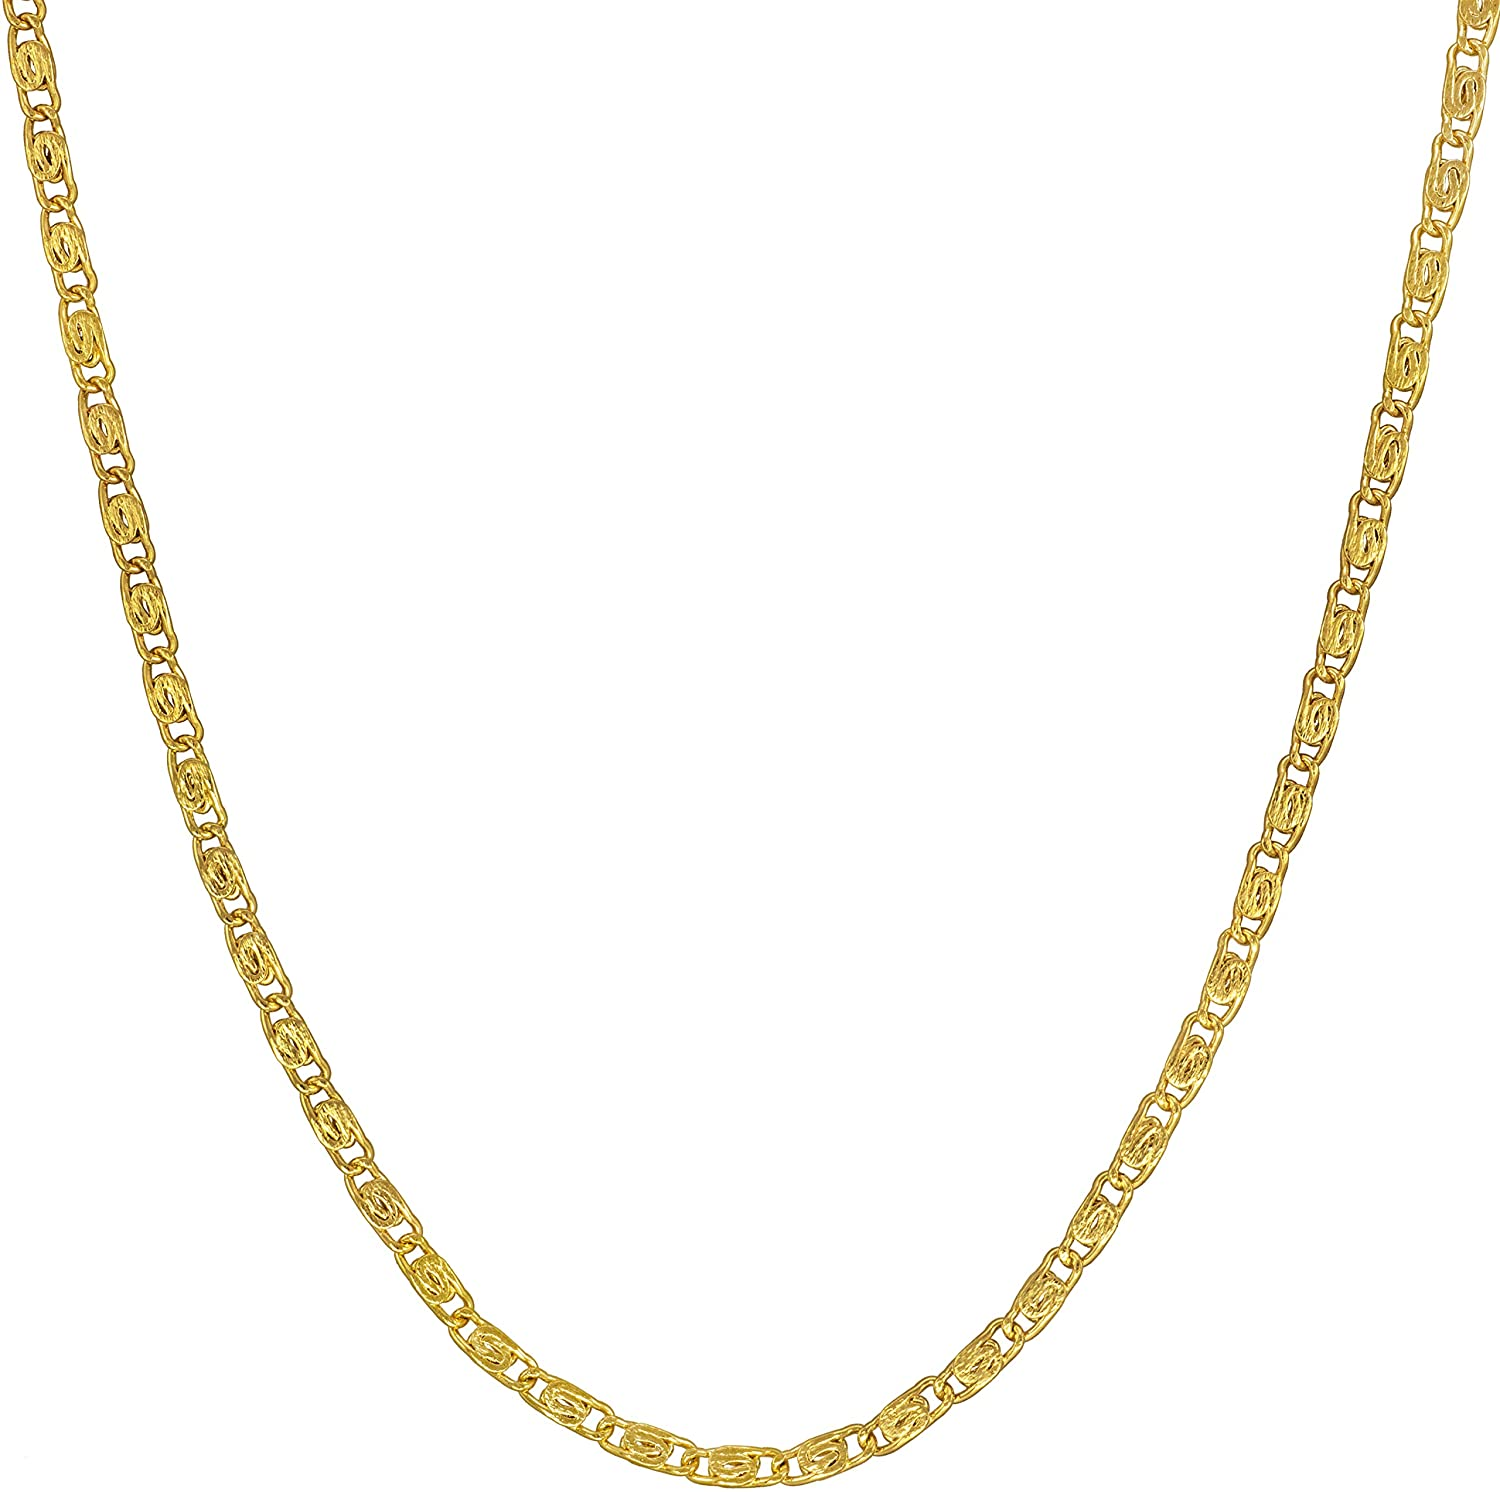 Lifetime Jewelry 1.9mm Scroll Link Chain Necklace 24k Gold Plated for Men & Women